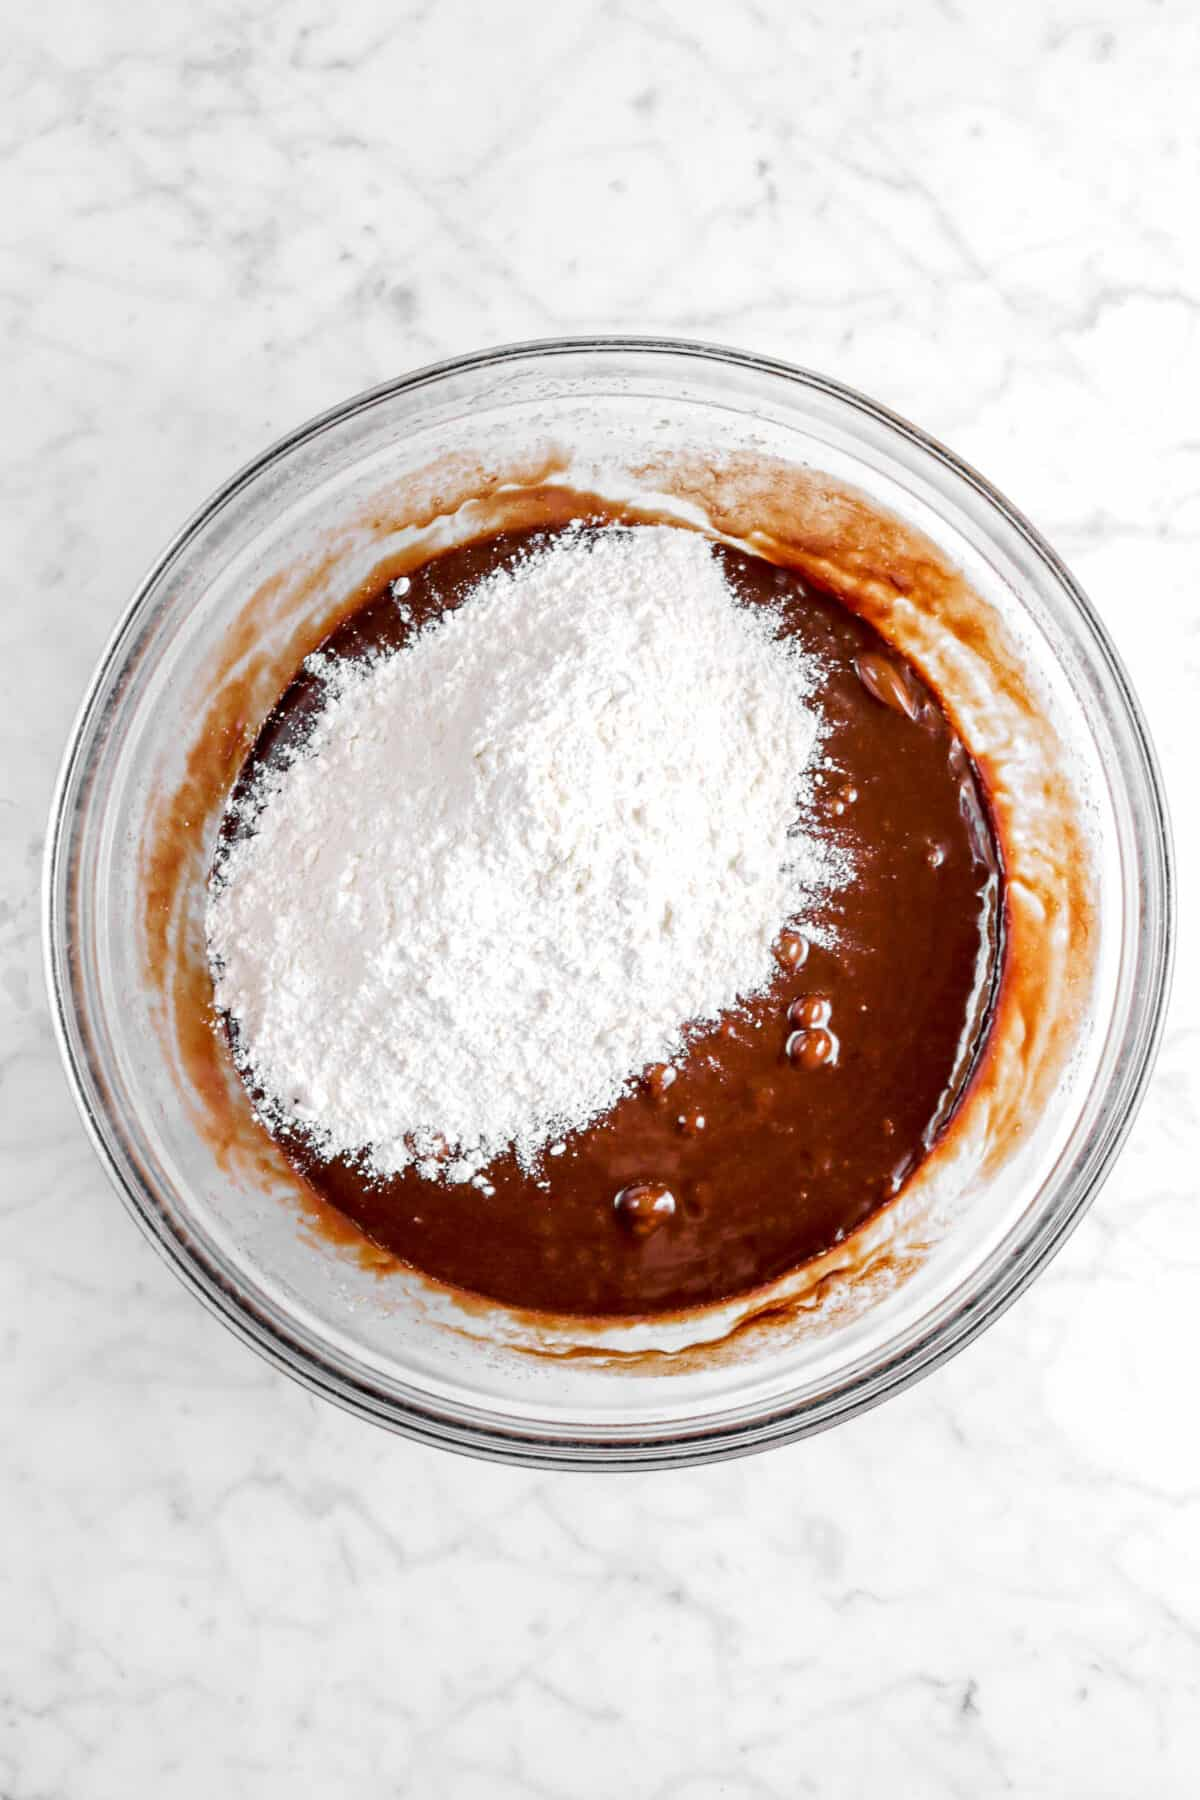 flour added to chocolate batter